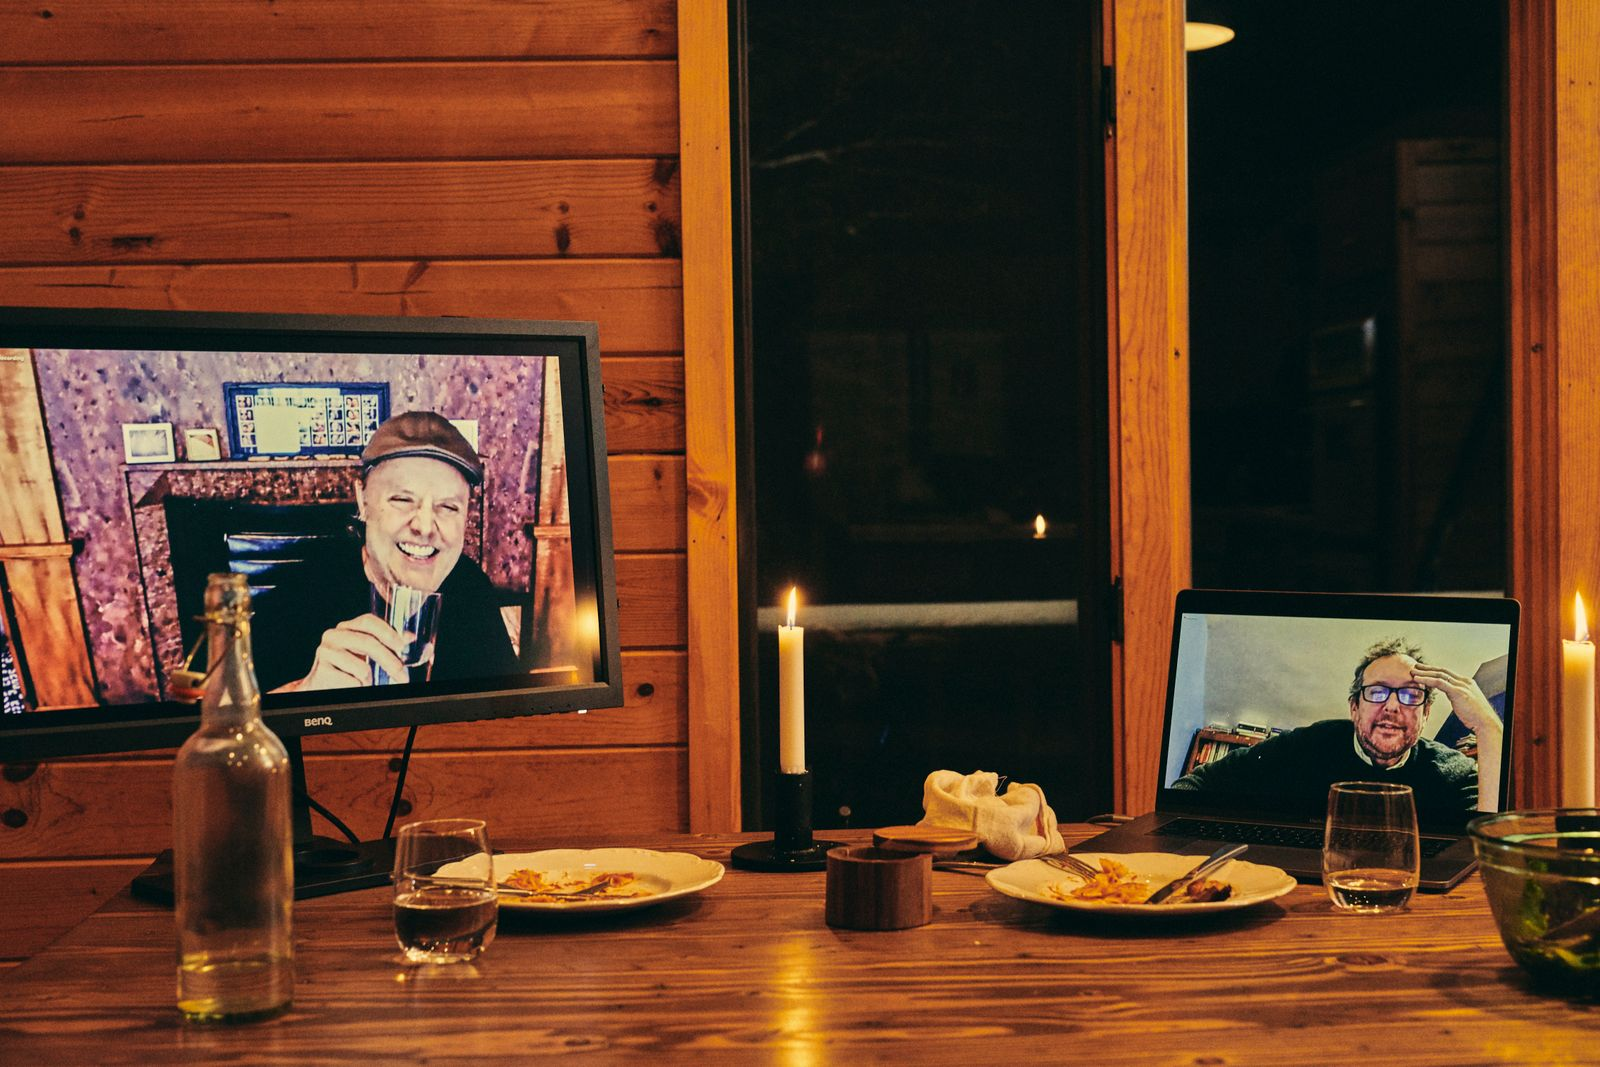 Lars Ulrich, drummer for Metallica, left, and A.O. Scott, film critic for The New York Times, converse via Zoom, Bethel Woods, N.Y., Jan. 27, 2021. (Bryan Derballa/The New York Times)